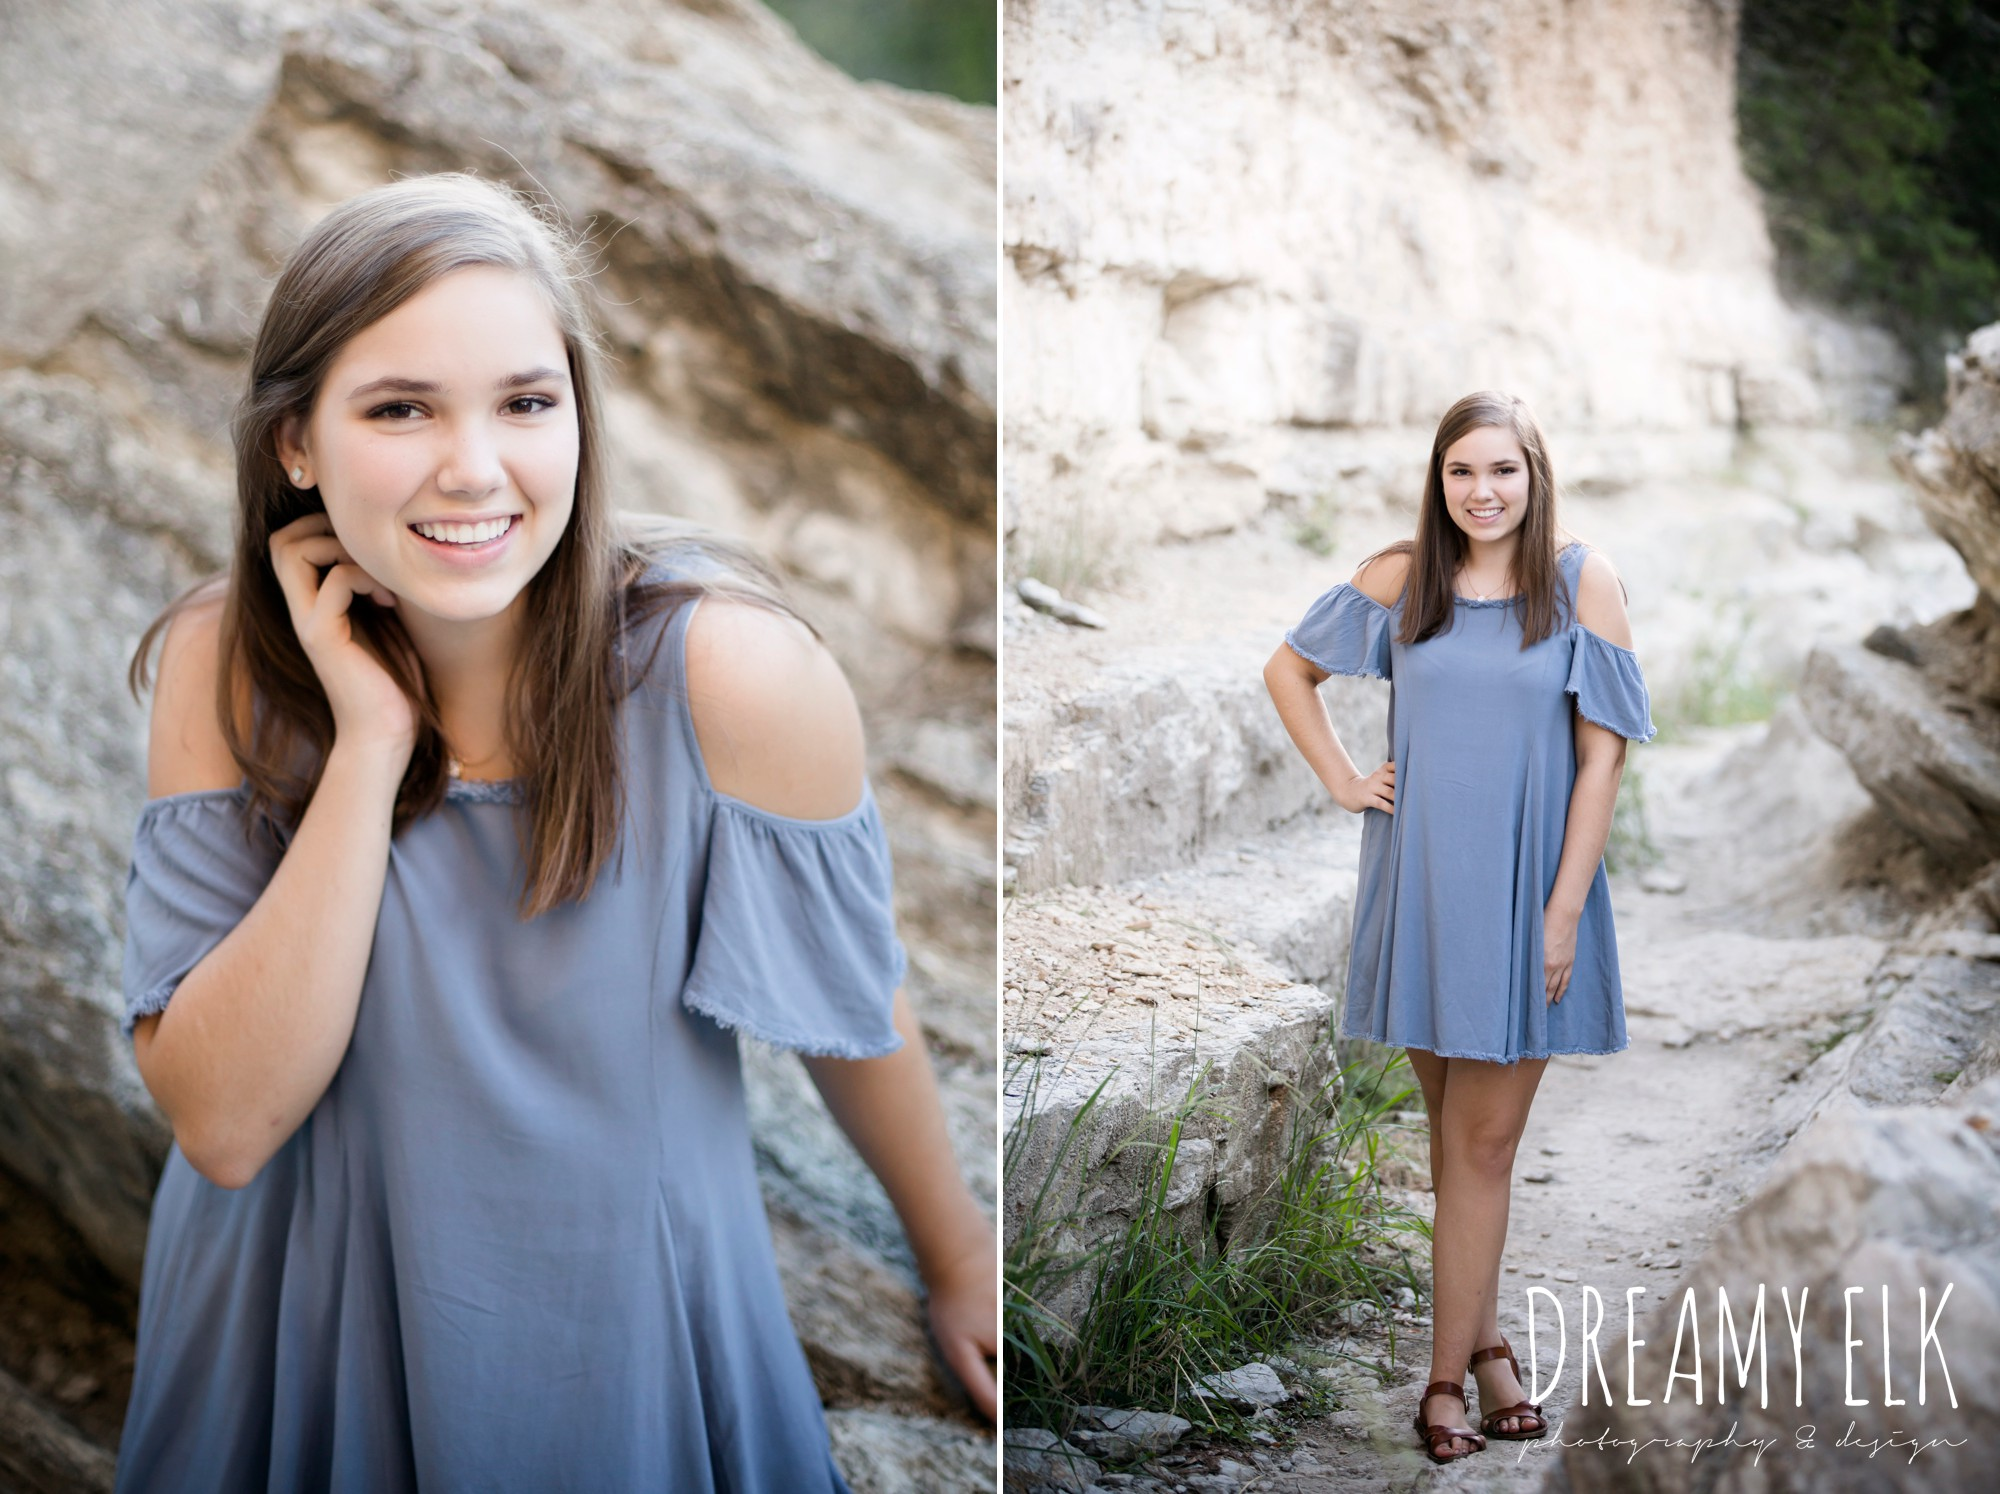 outdoor fall high school senior girl, walnut creek park, austin, texas {dreamy elk photography and design}